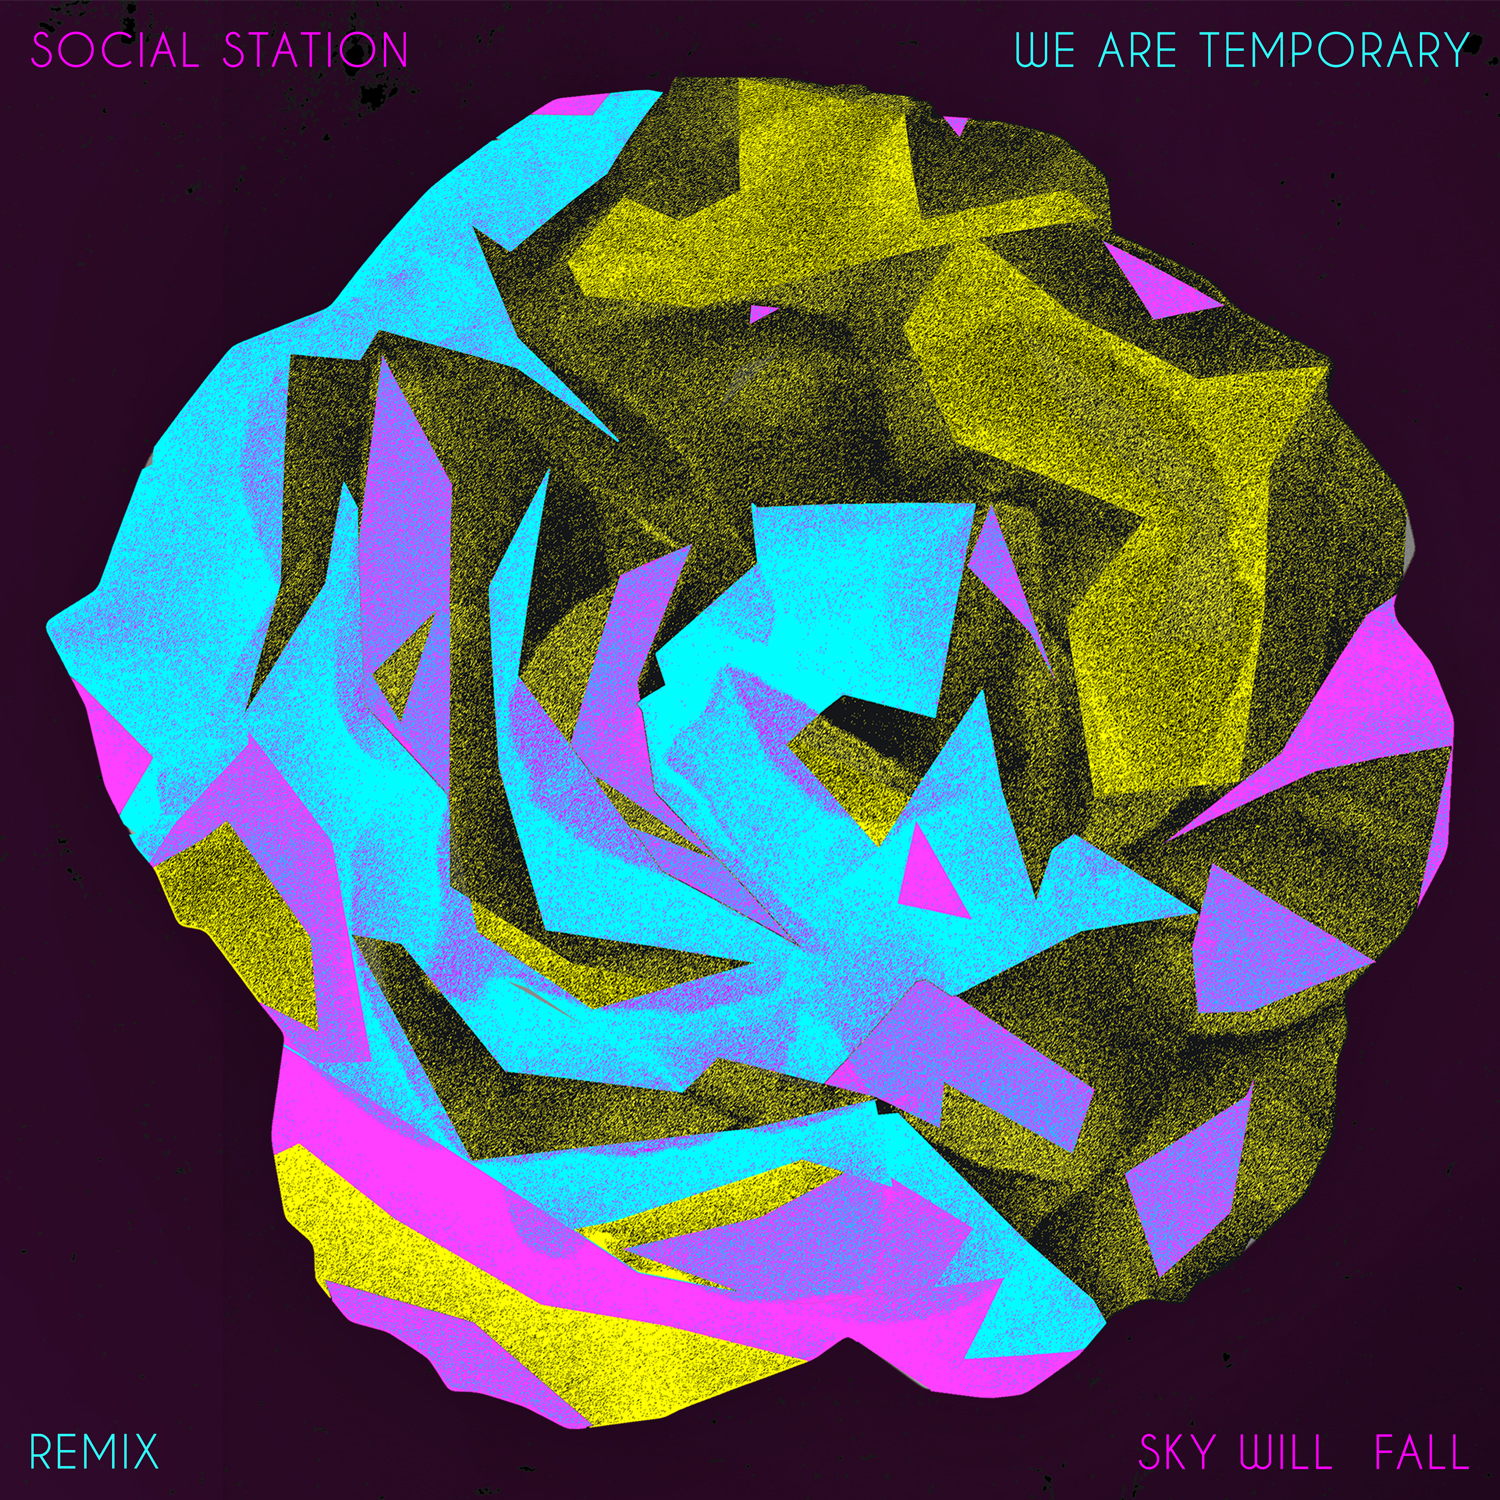 social-station-sky-will-fall-we-are-temporary-remix